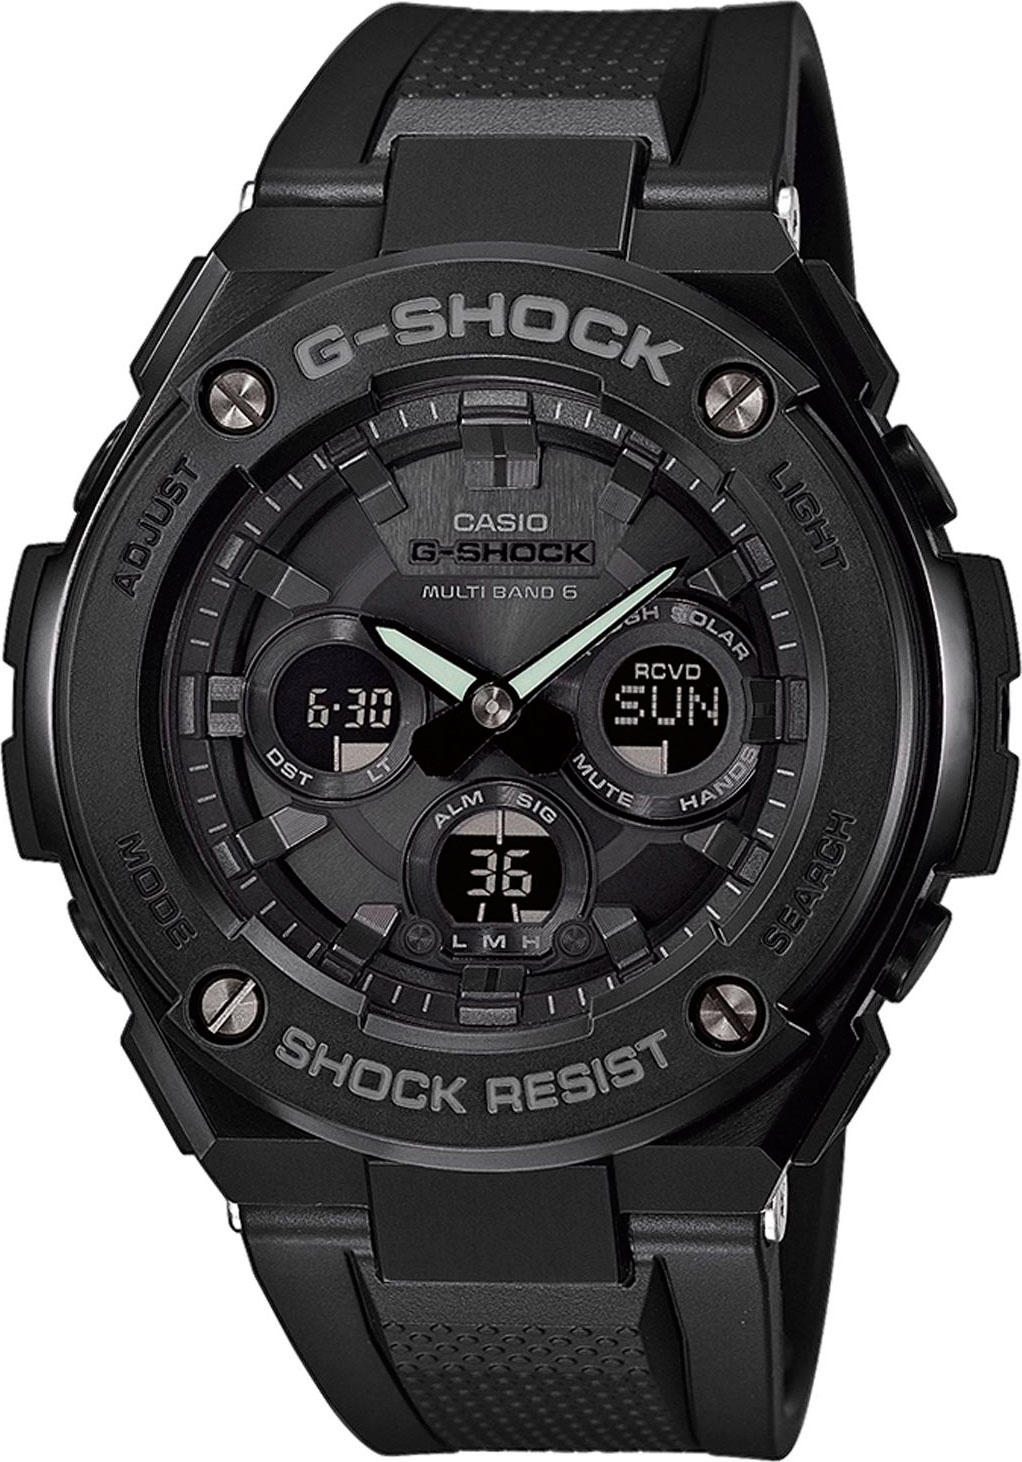 Casio G-shock G-Steel GST-W300G-1A1 цена и фото